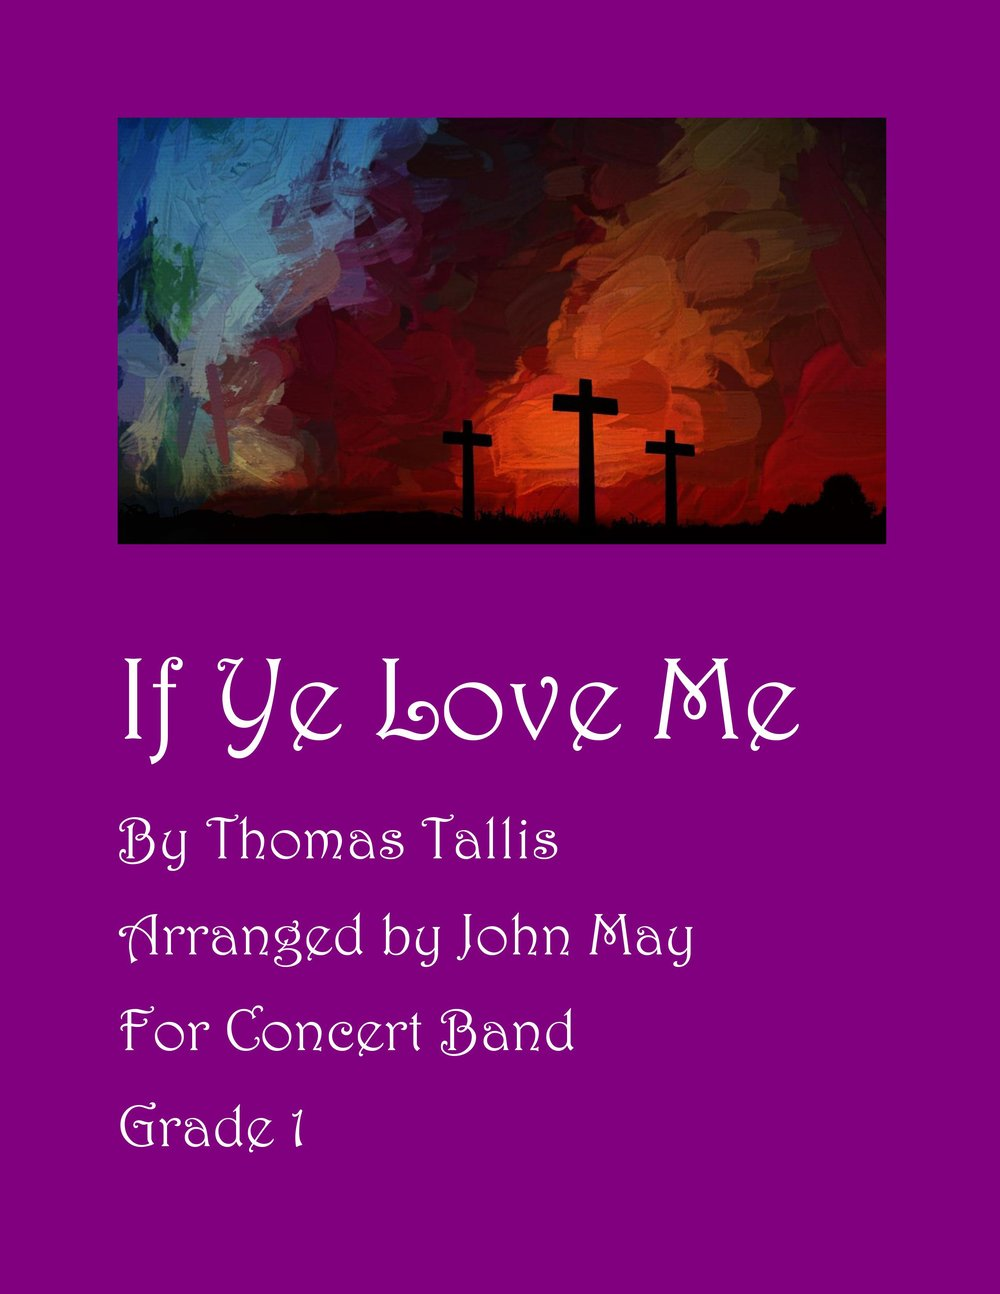 If Ye Love Me-Cover Page.jpg